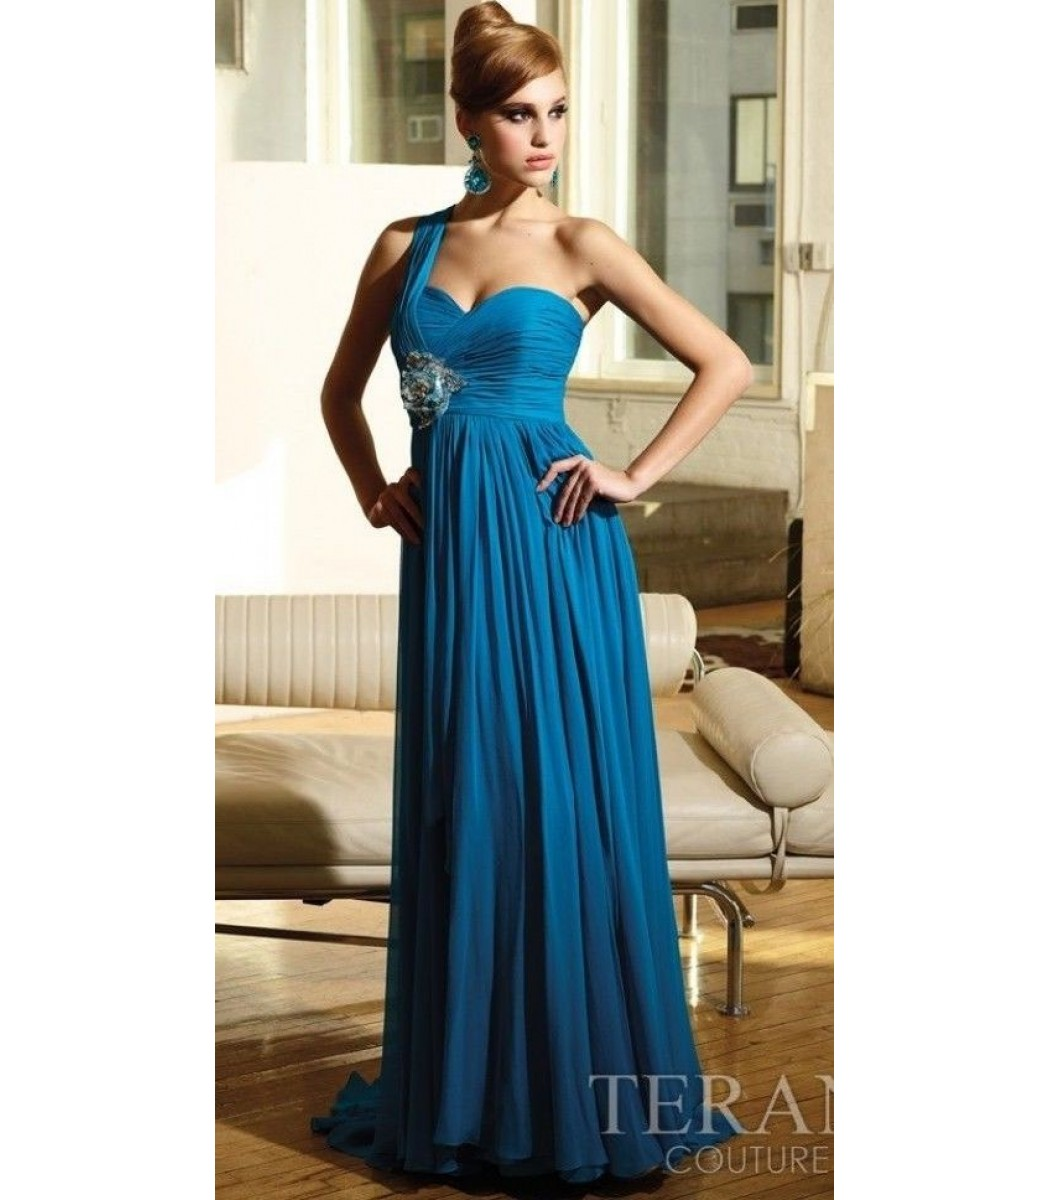 Terani Couture E1103 Turquoise One Shoulder Evening Gown Dress Size ...